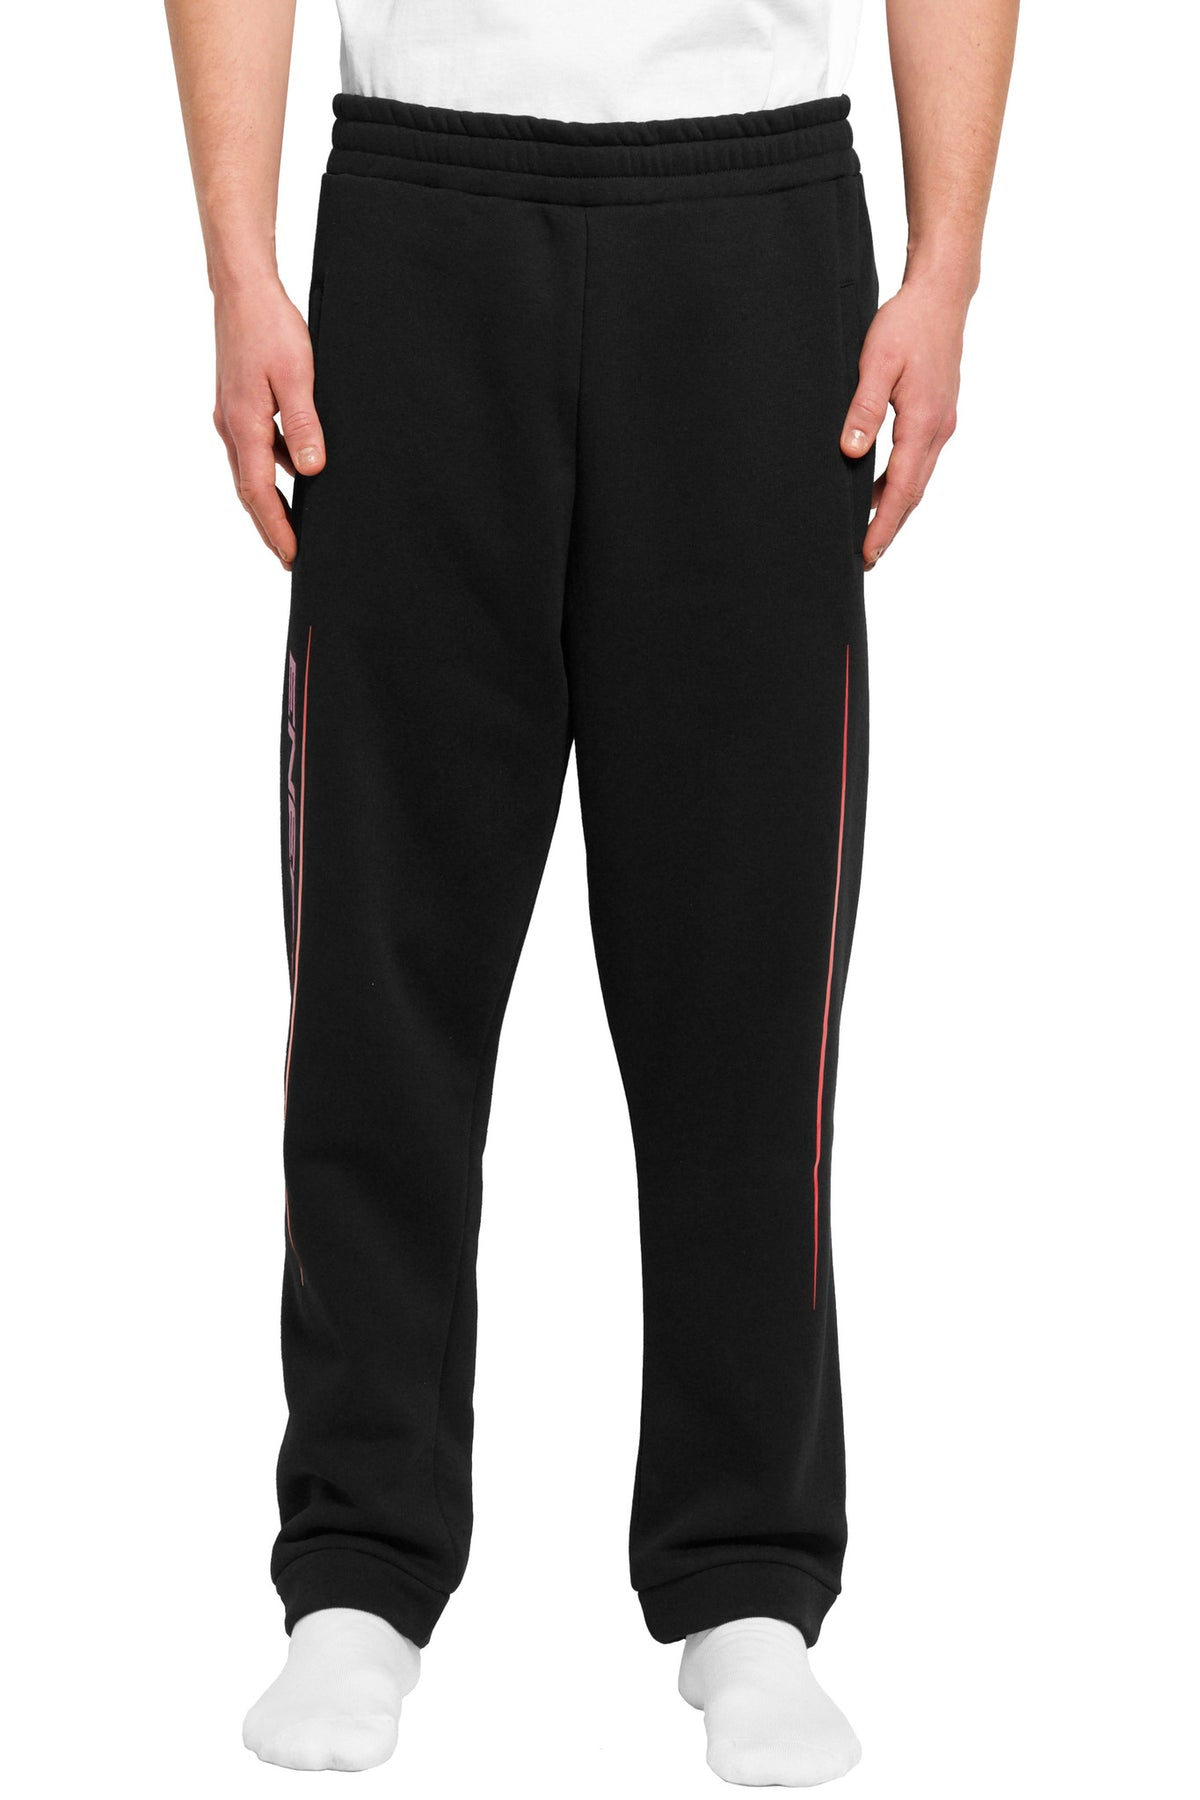 032c Motocross Sweatpants Black - 032c